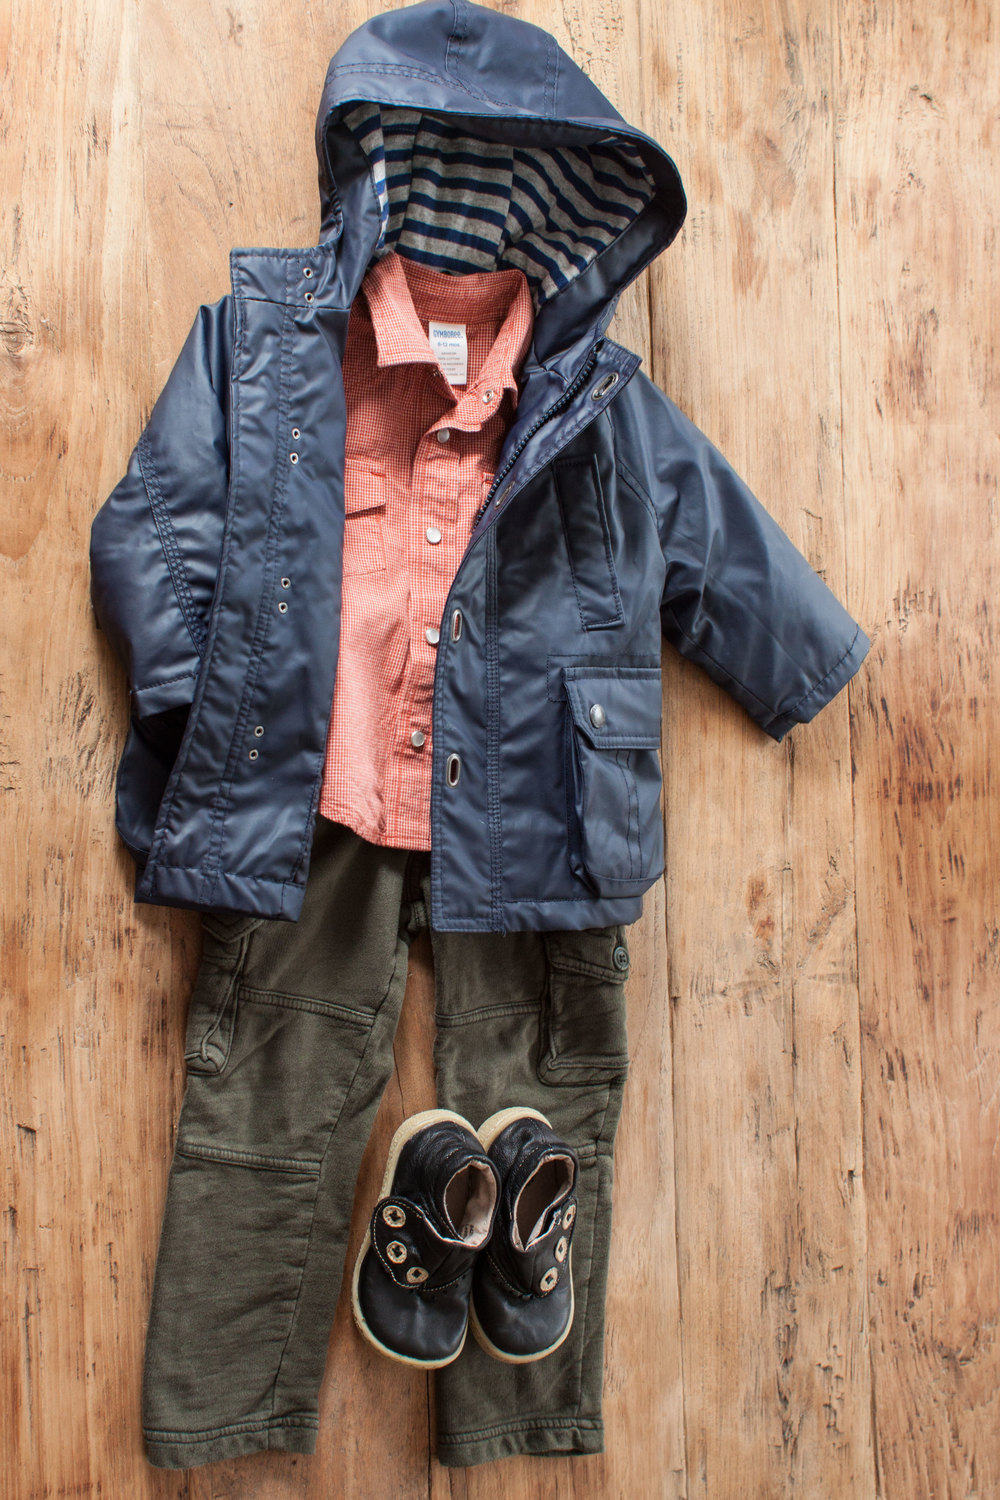 Image includes Boys Gap soft green cargo pants. Size: 3T $6.50.